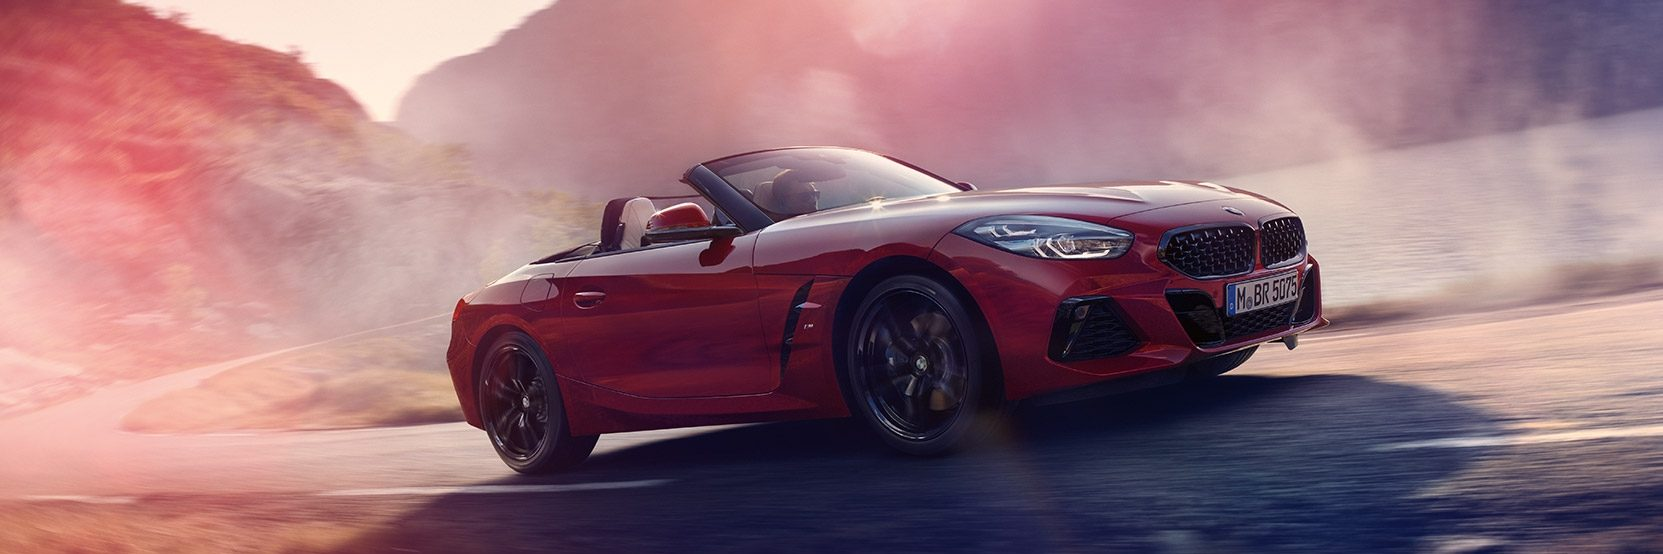 Red BMW Z4 in motion by body of water, sun glare in shot